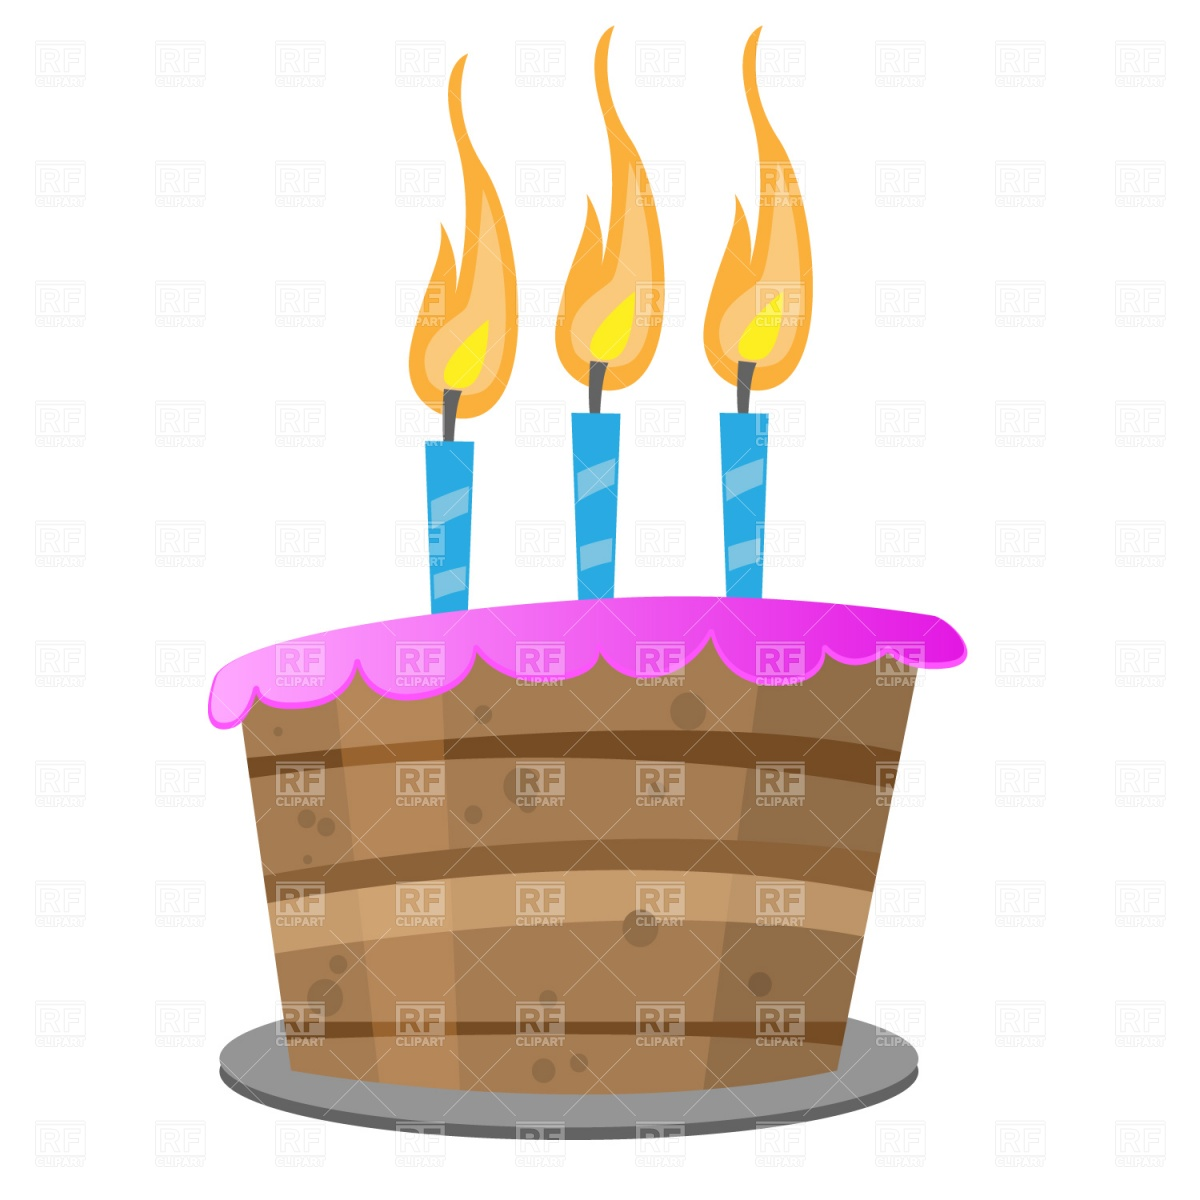 Birthday cake candle clipart clip art freeuse download 3 Birthday Cake Candles Clipart - Clipart Kid clip art freeuse download